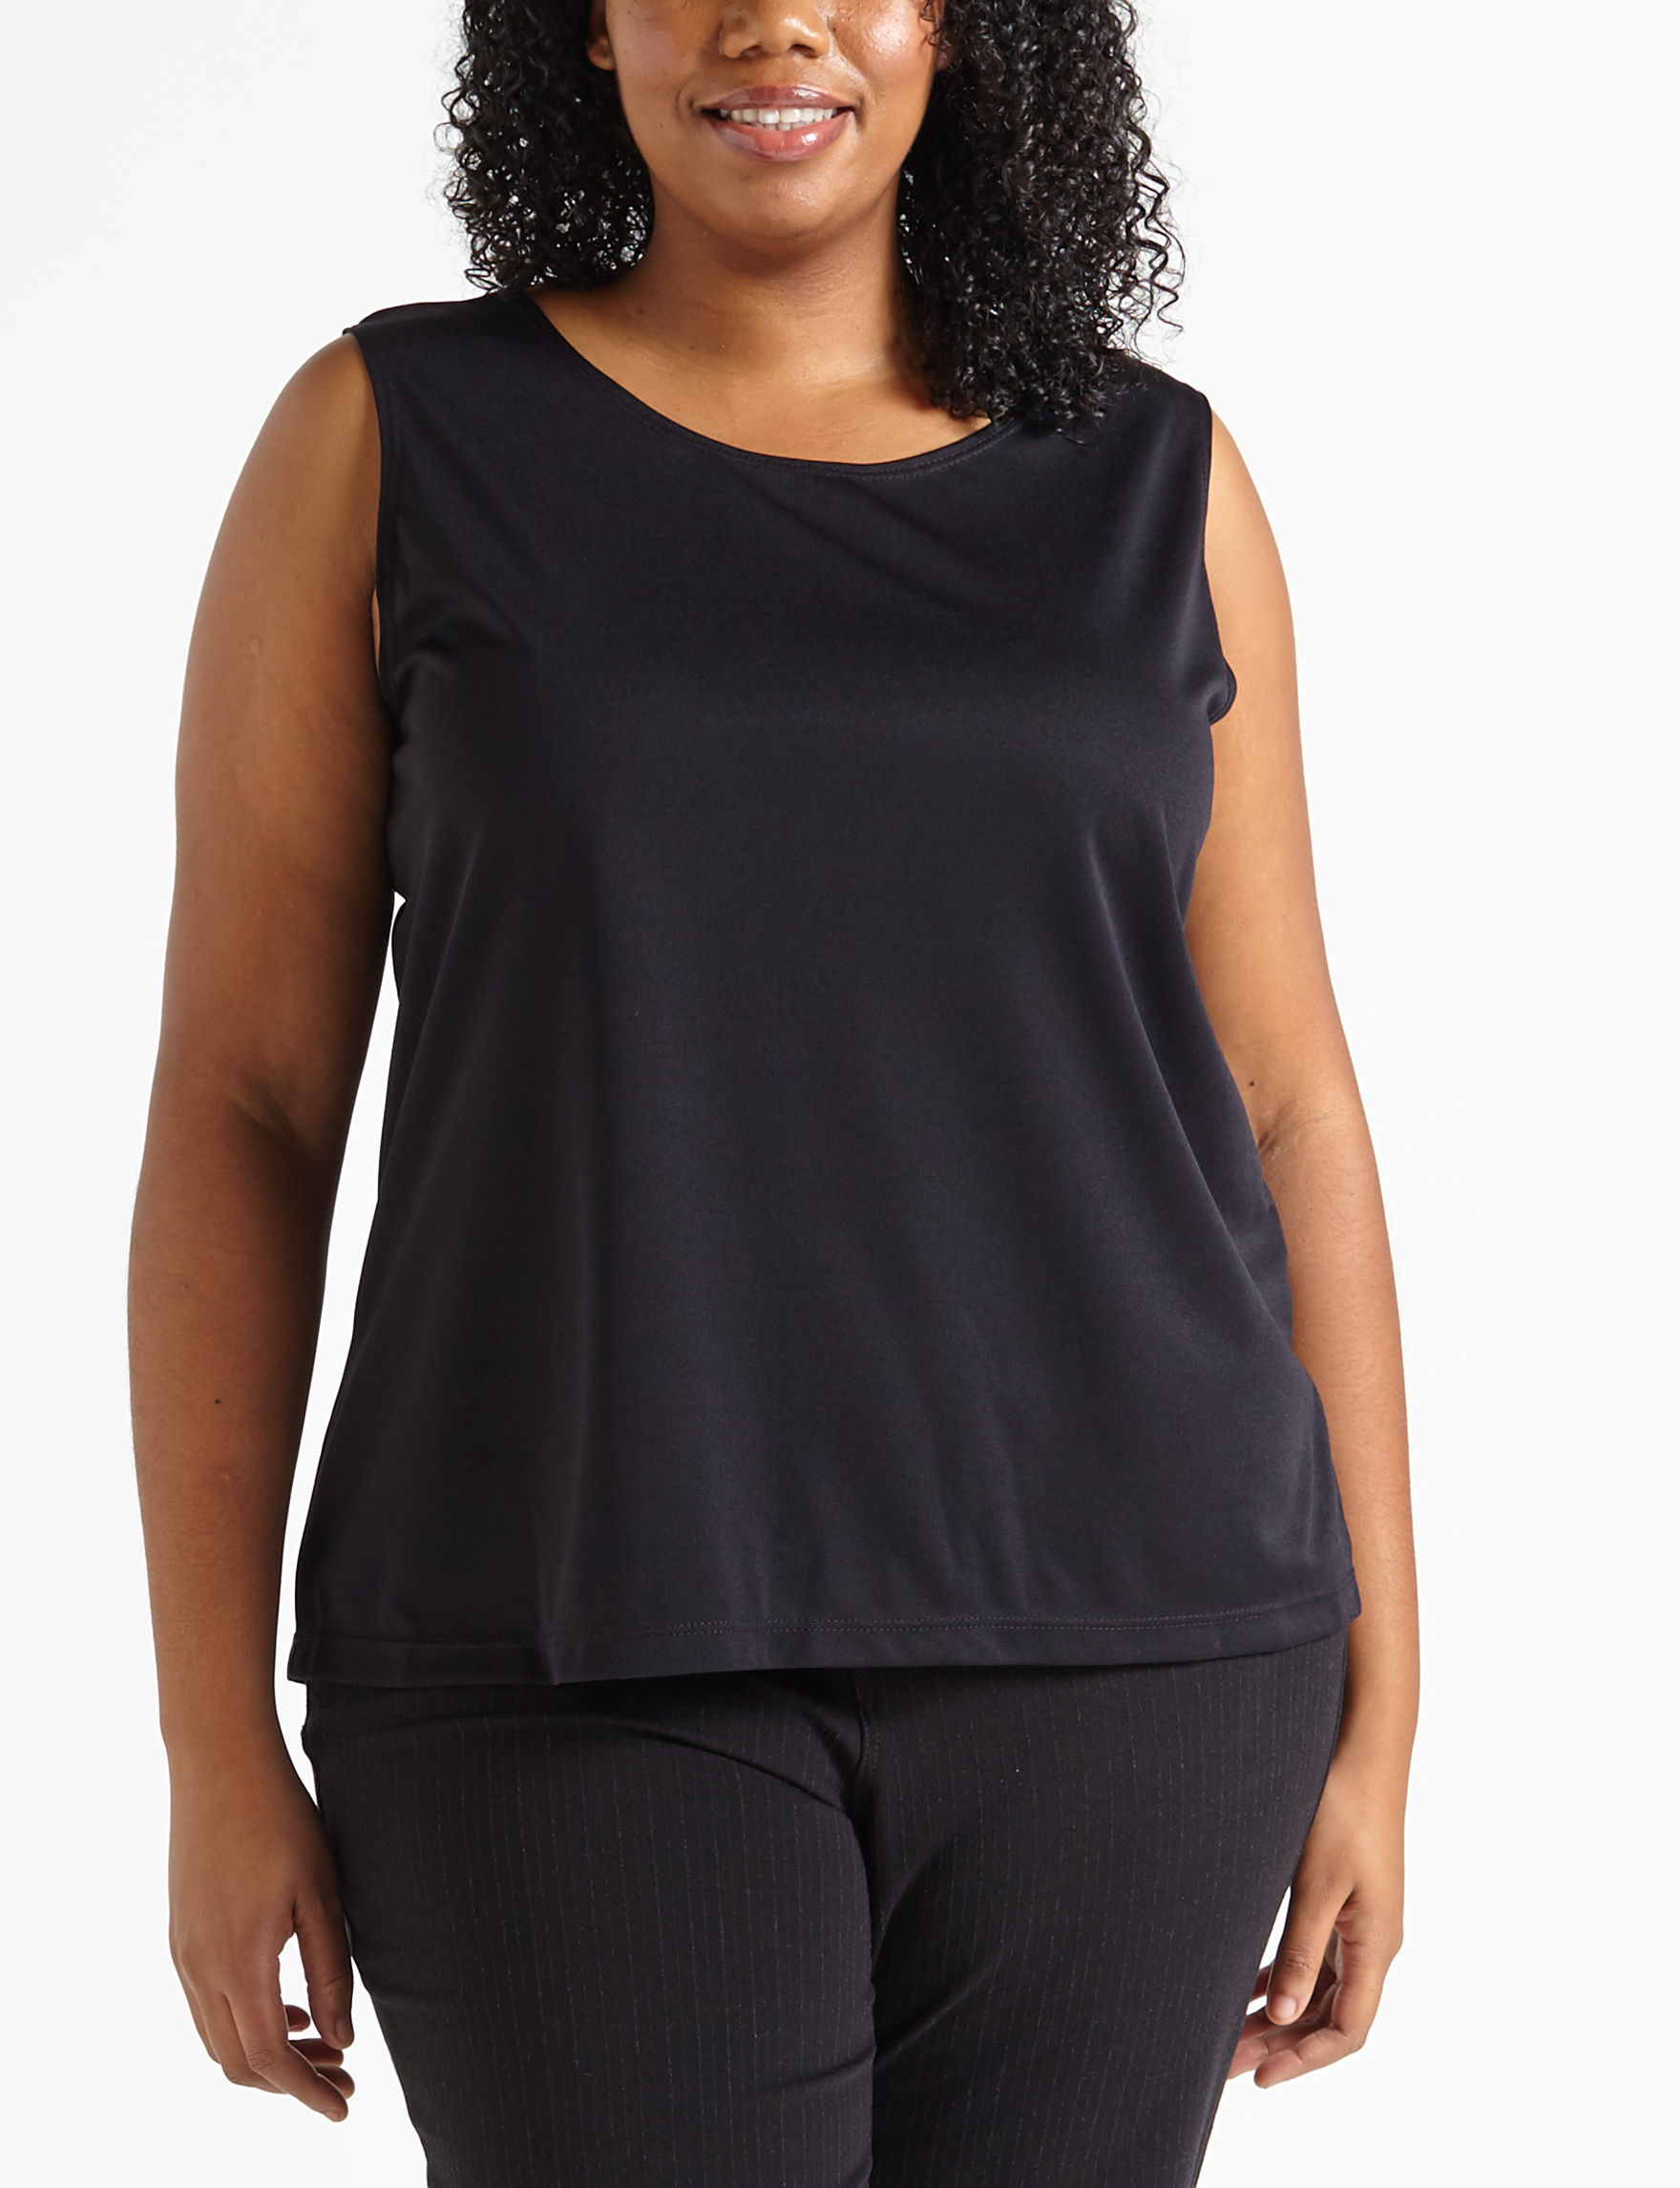 Plus-Size Solid Color Knit Tank Top | Stage Stores